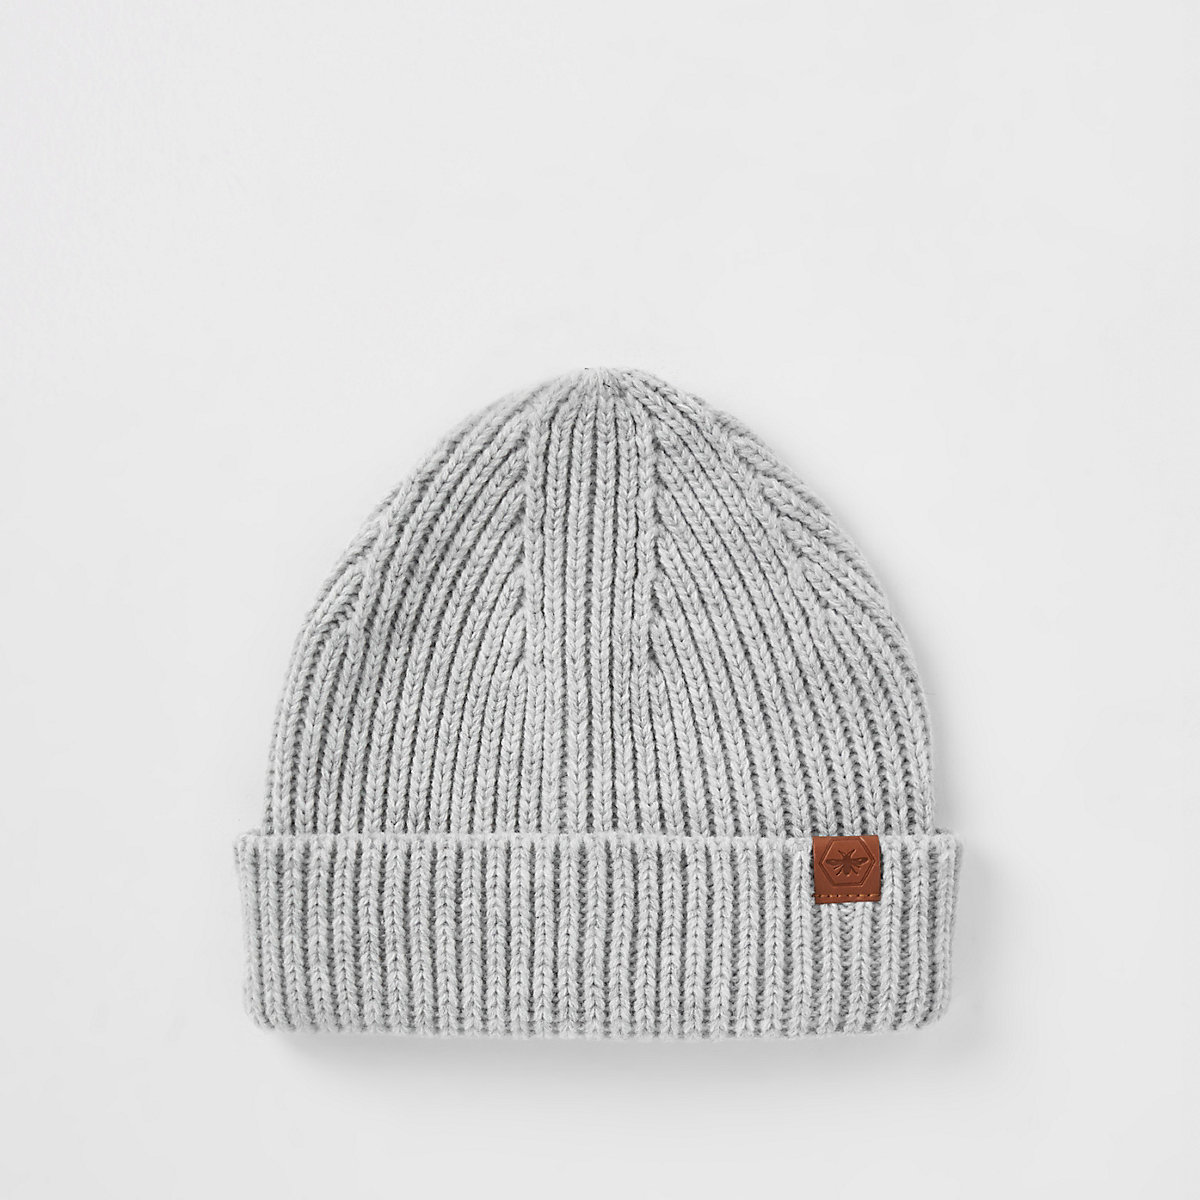 Boys grey fisherman knit beanie hat